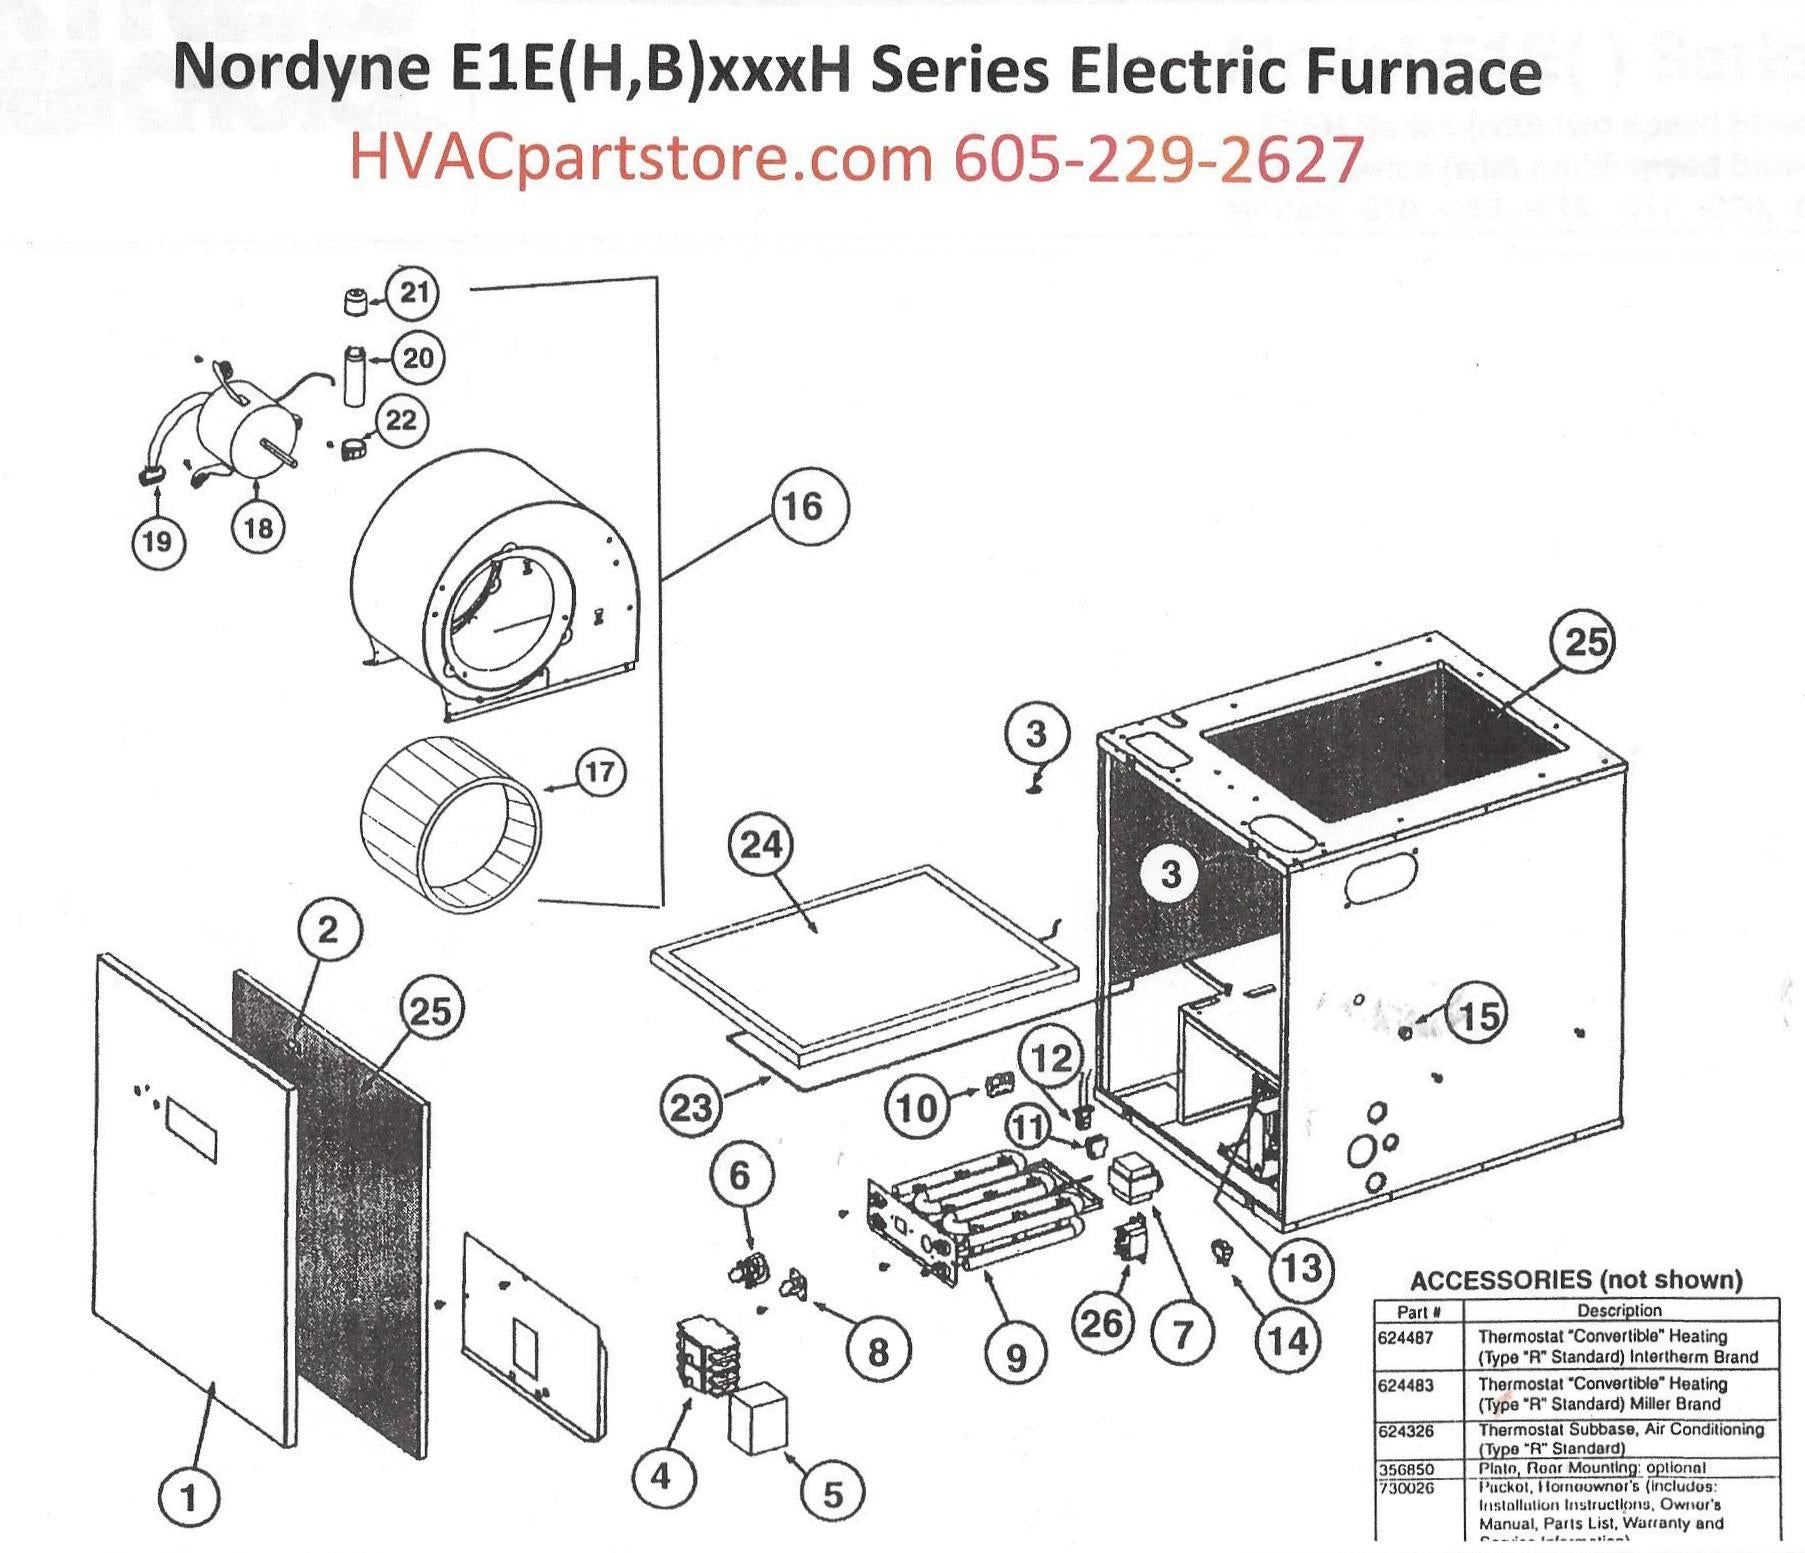 E1eh012h Nordyne Electric Furnace Parts on Vintage Air Conditioning Wiring Diagram